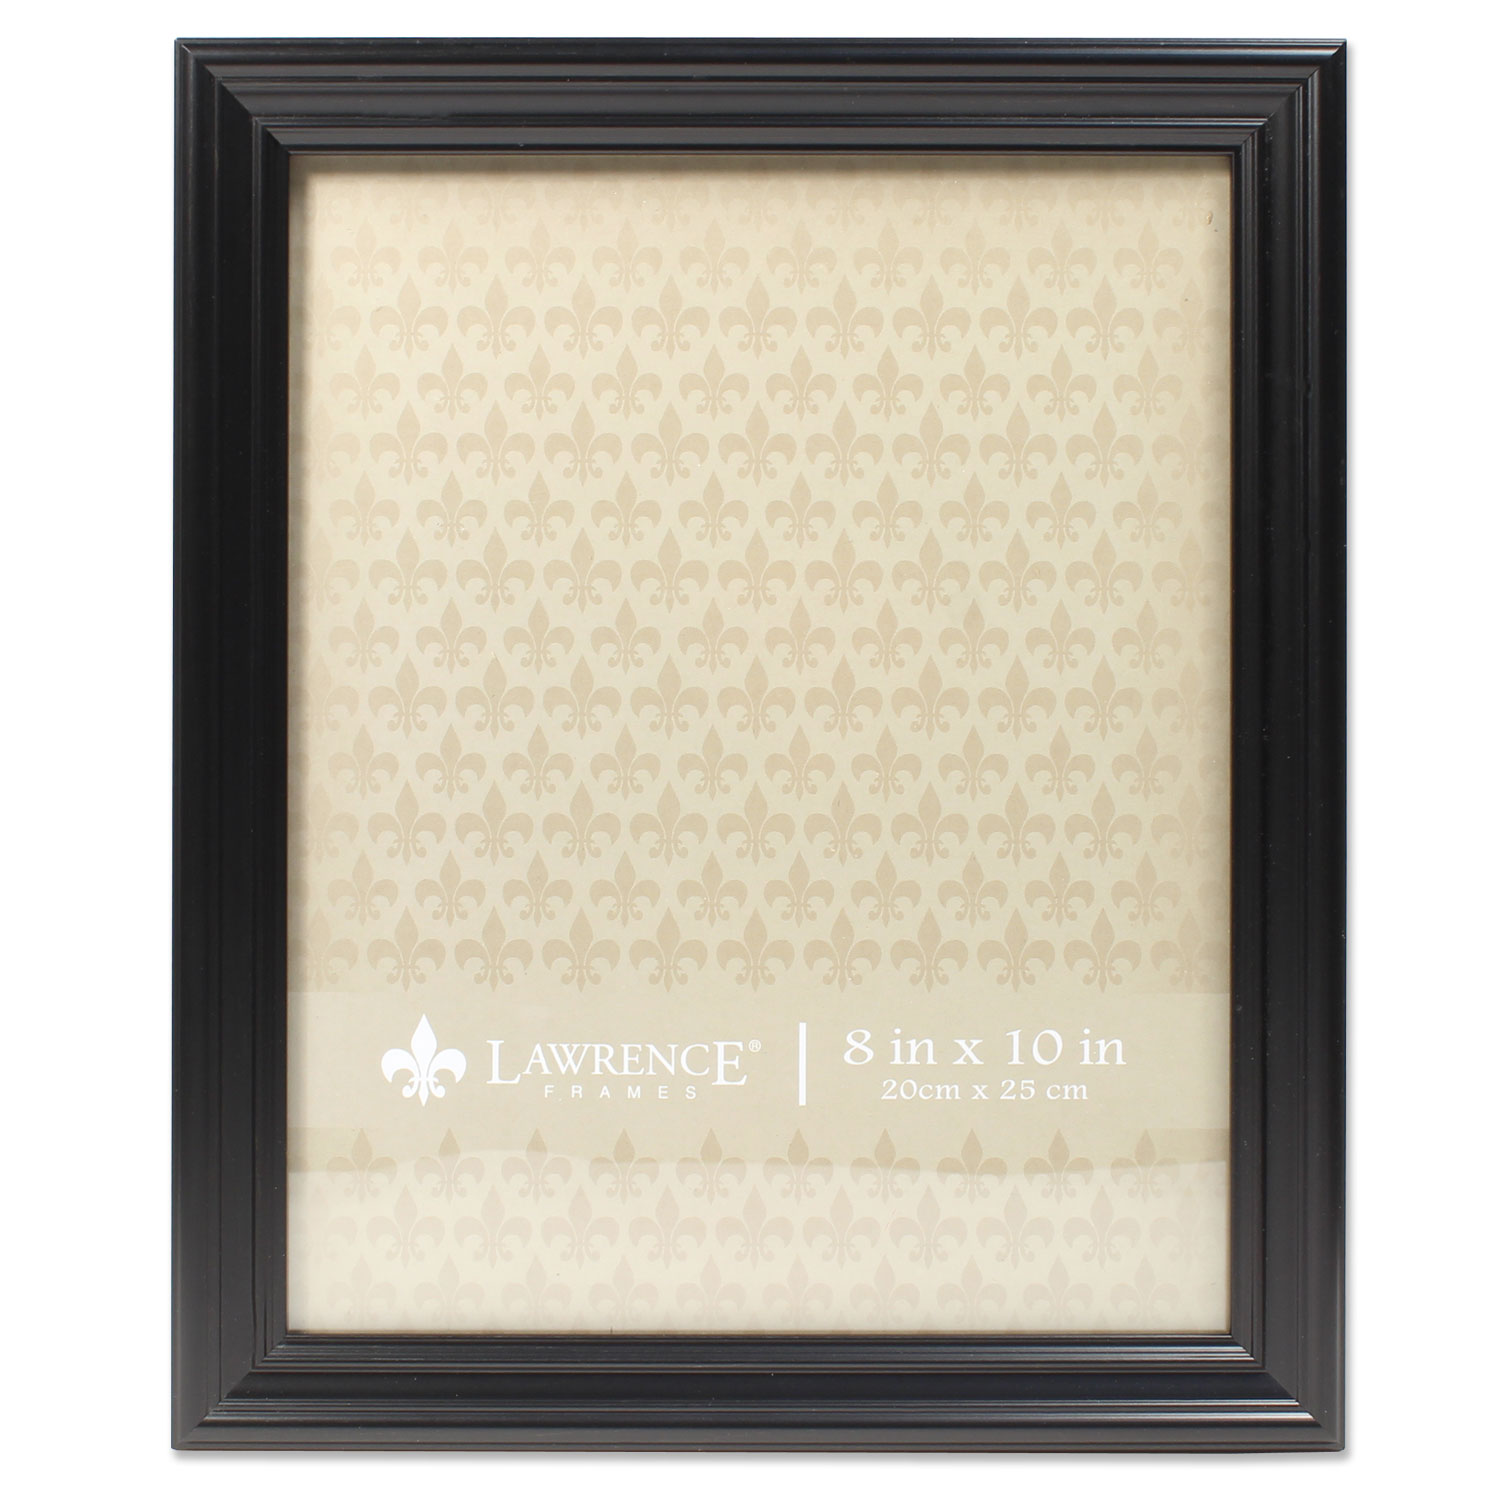 8x10 Classic Detailed Black Picture Frame by Lawrence Frames